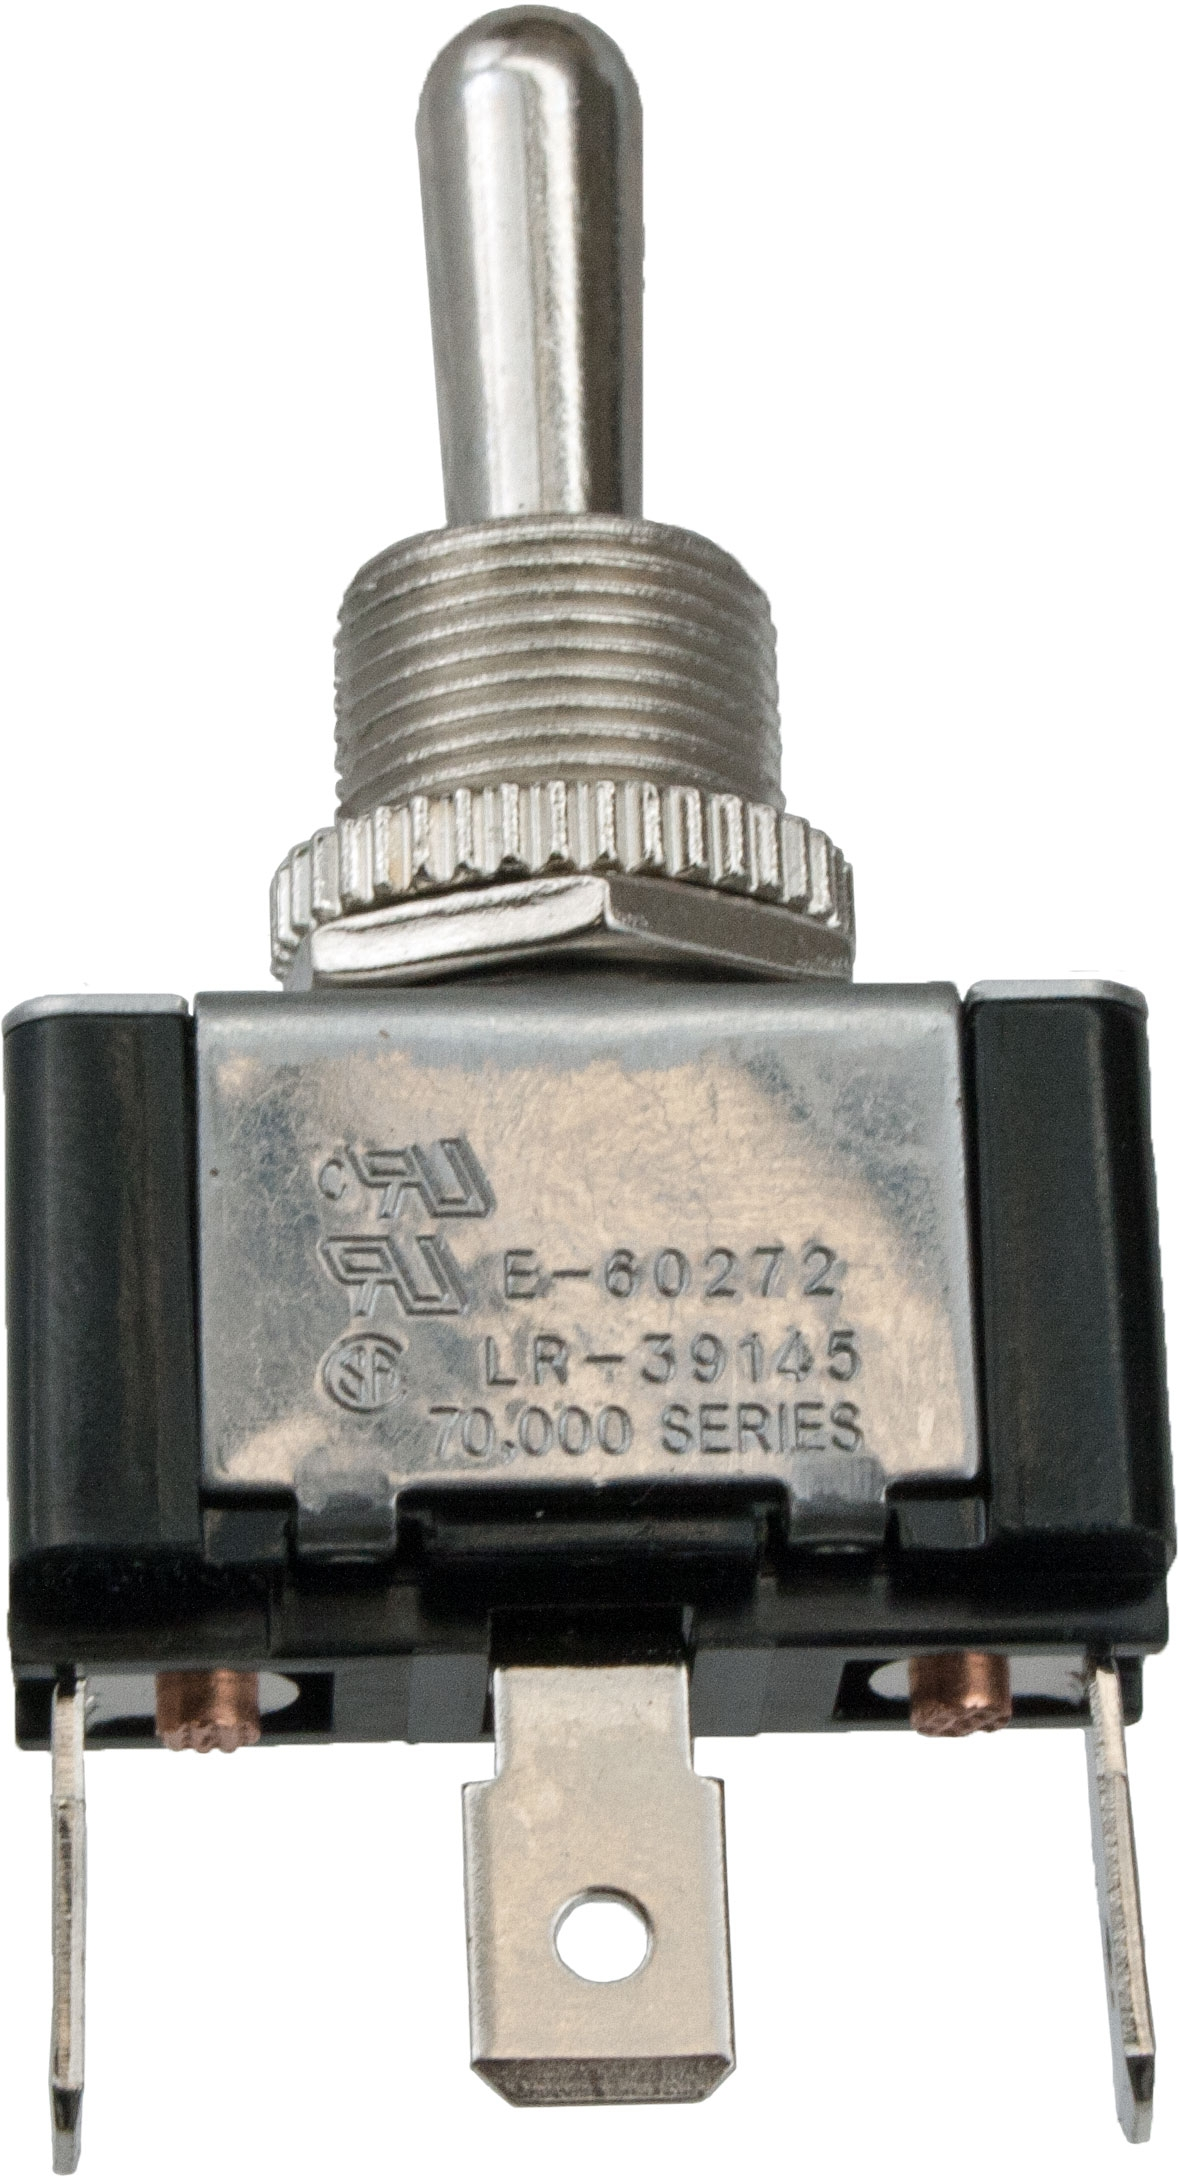 3 Blade Terminal Toggle Switch Momentary Mom On Off Spdt Reversing Rocker Dpdt Wiring Diagram 765062 Elecdirect